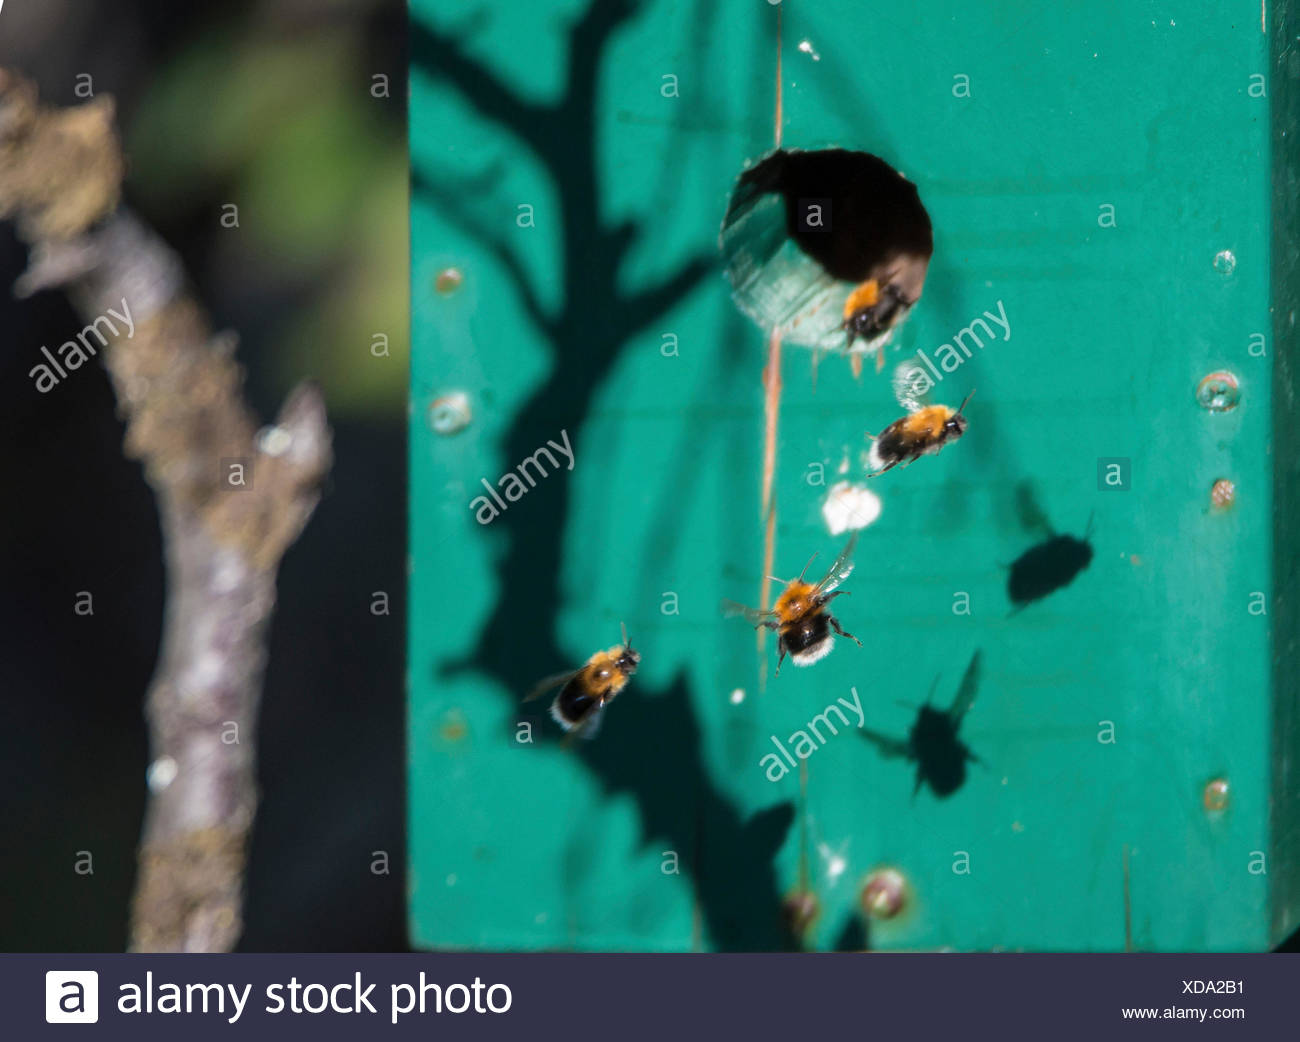 flying bumble bees in front of birdhouse, Norway, Troms - Stock Image